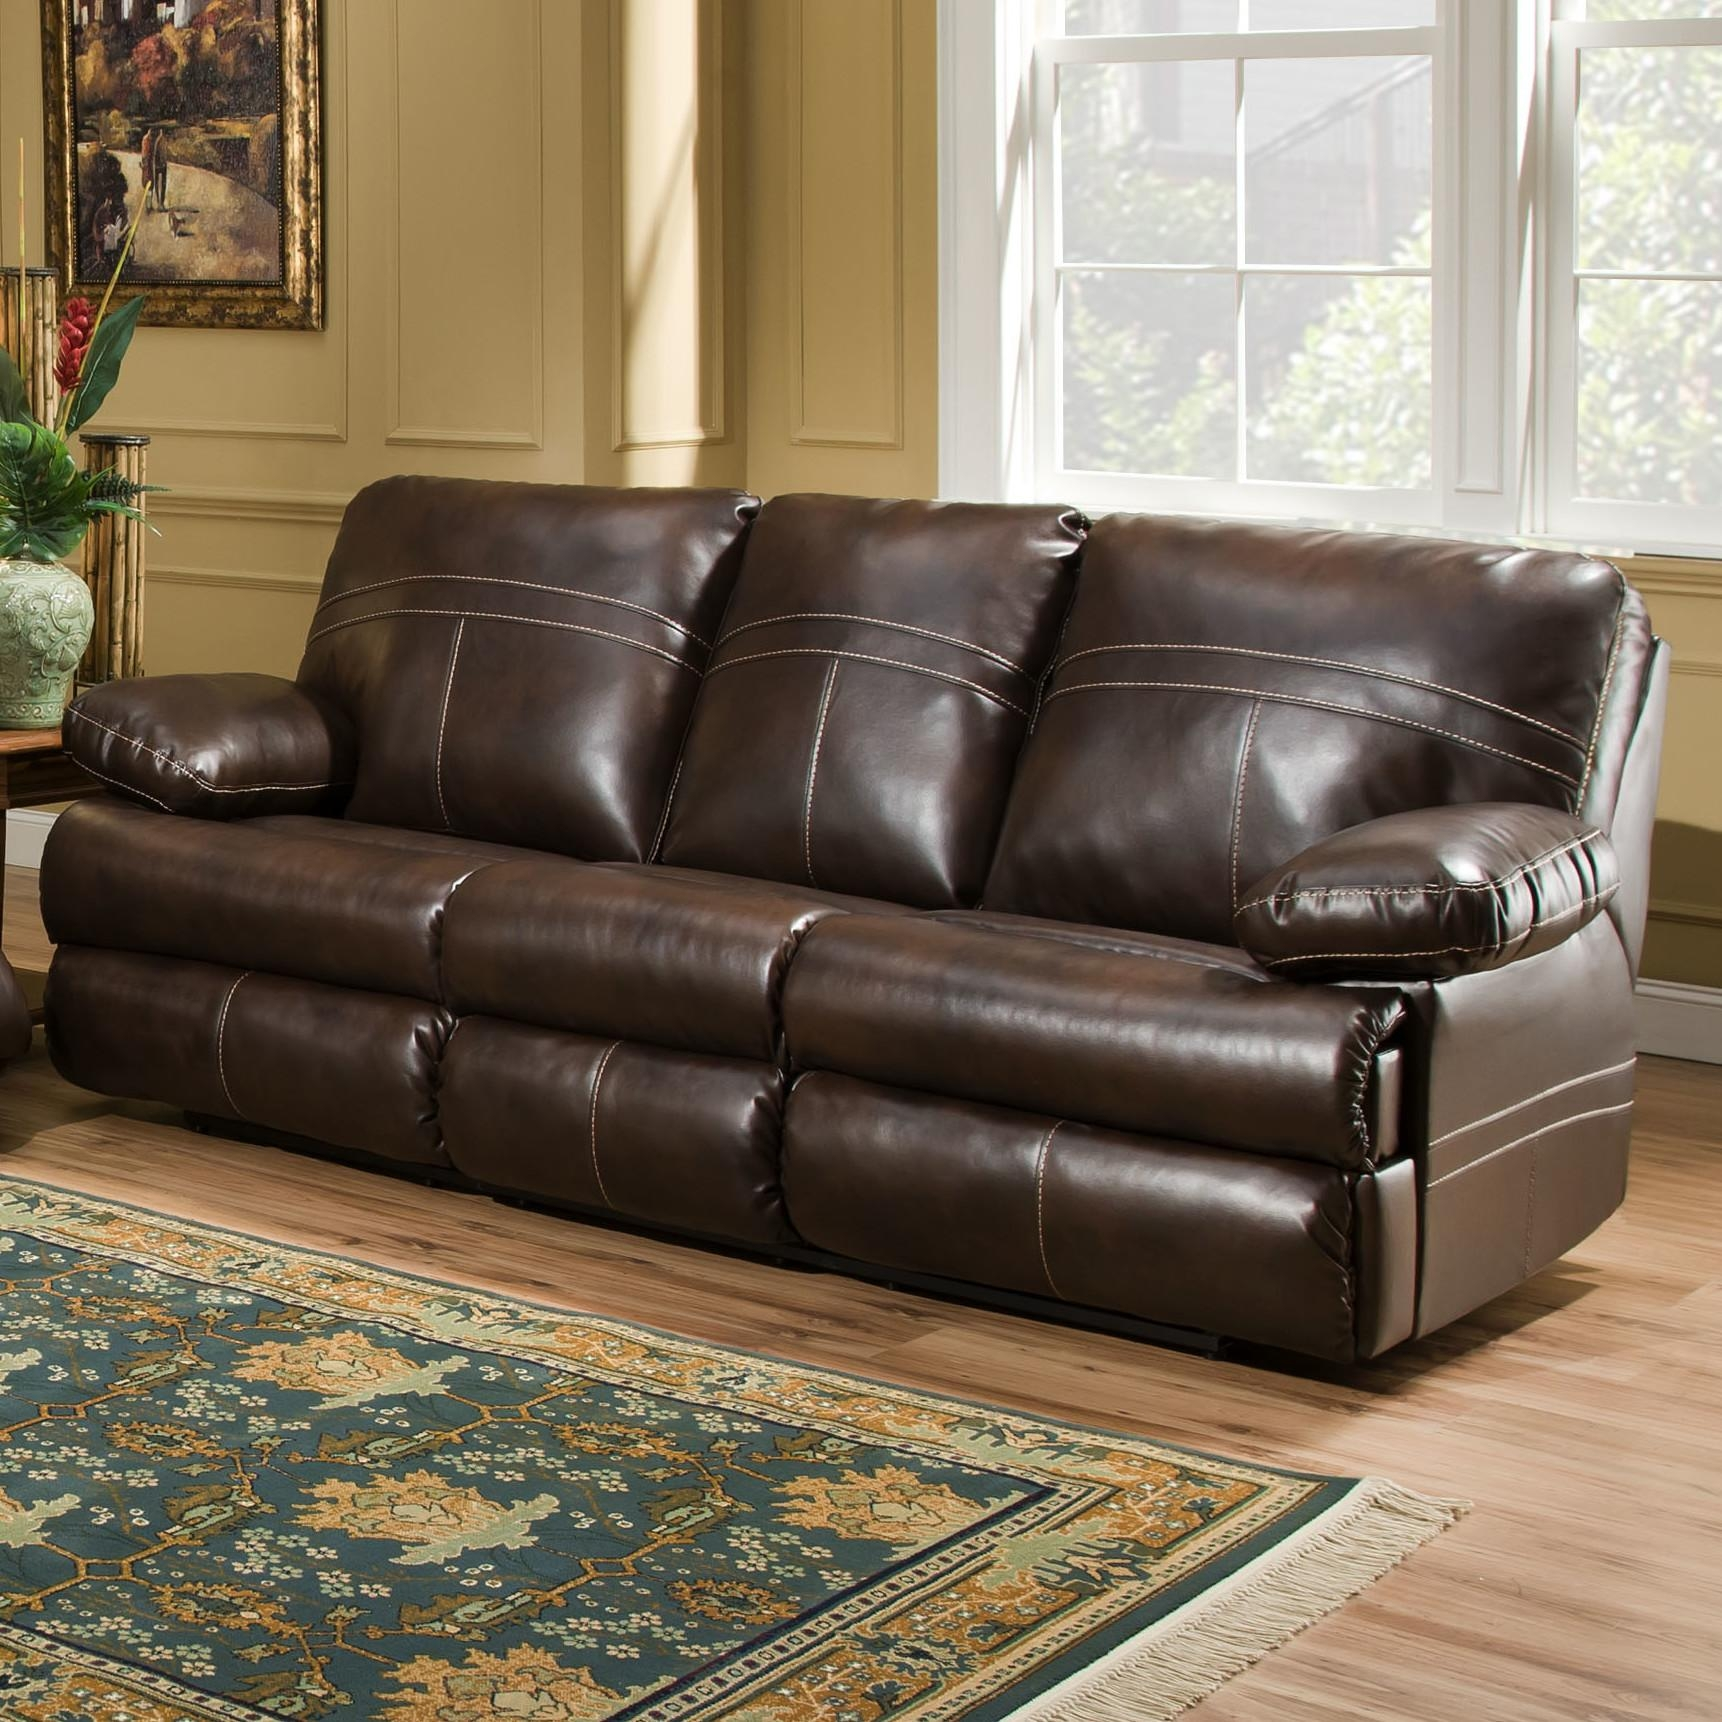 Furniture: Queen Size Simmons Sleeper Sofa For Stunning Home Throughout  Simmons Sofa Beds (Image